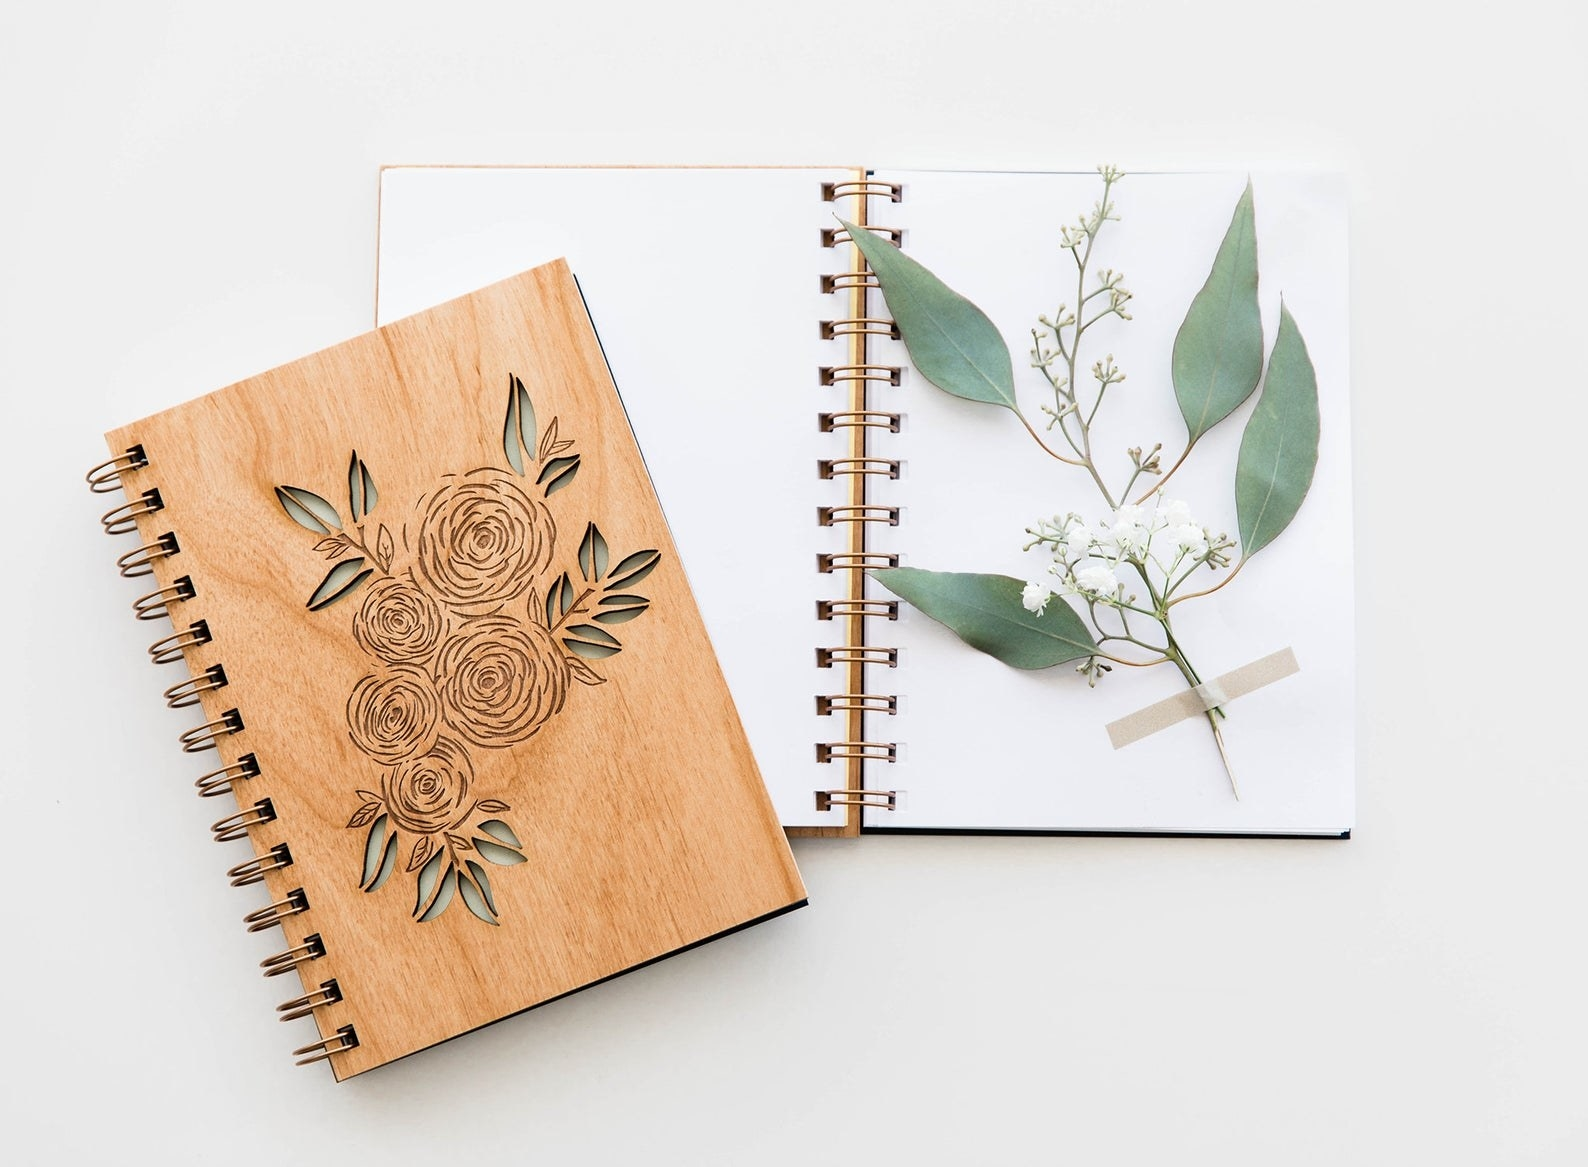 The spiral journal with a cover that's wooden and laser cut to look like roses with leaves